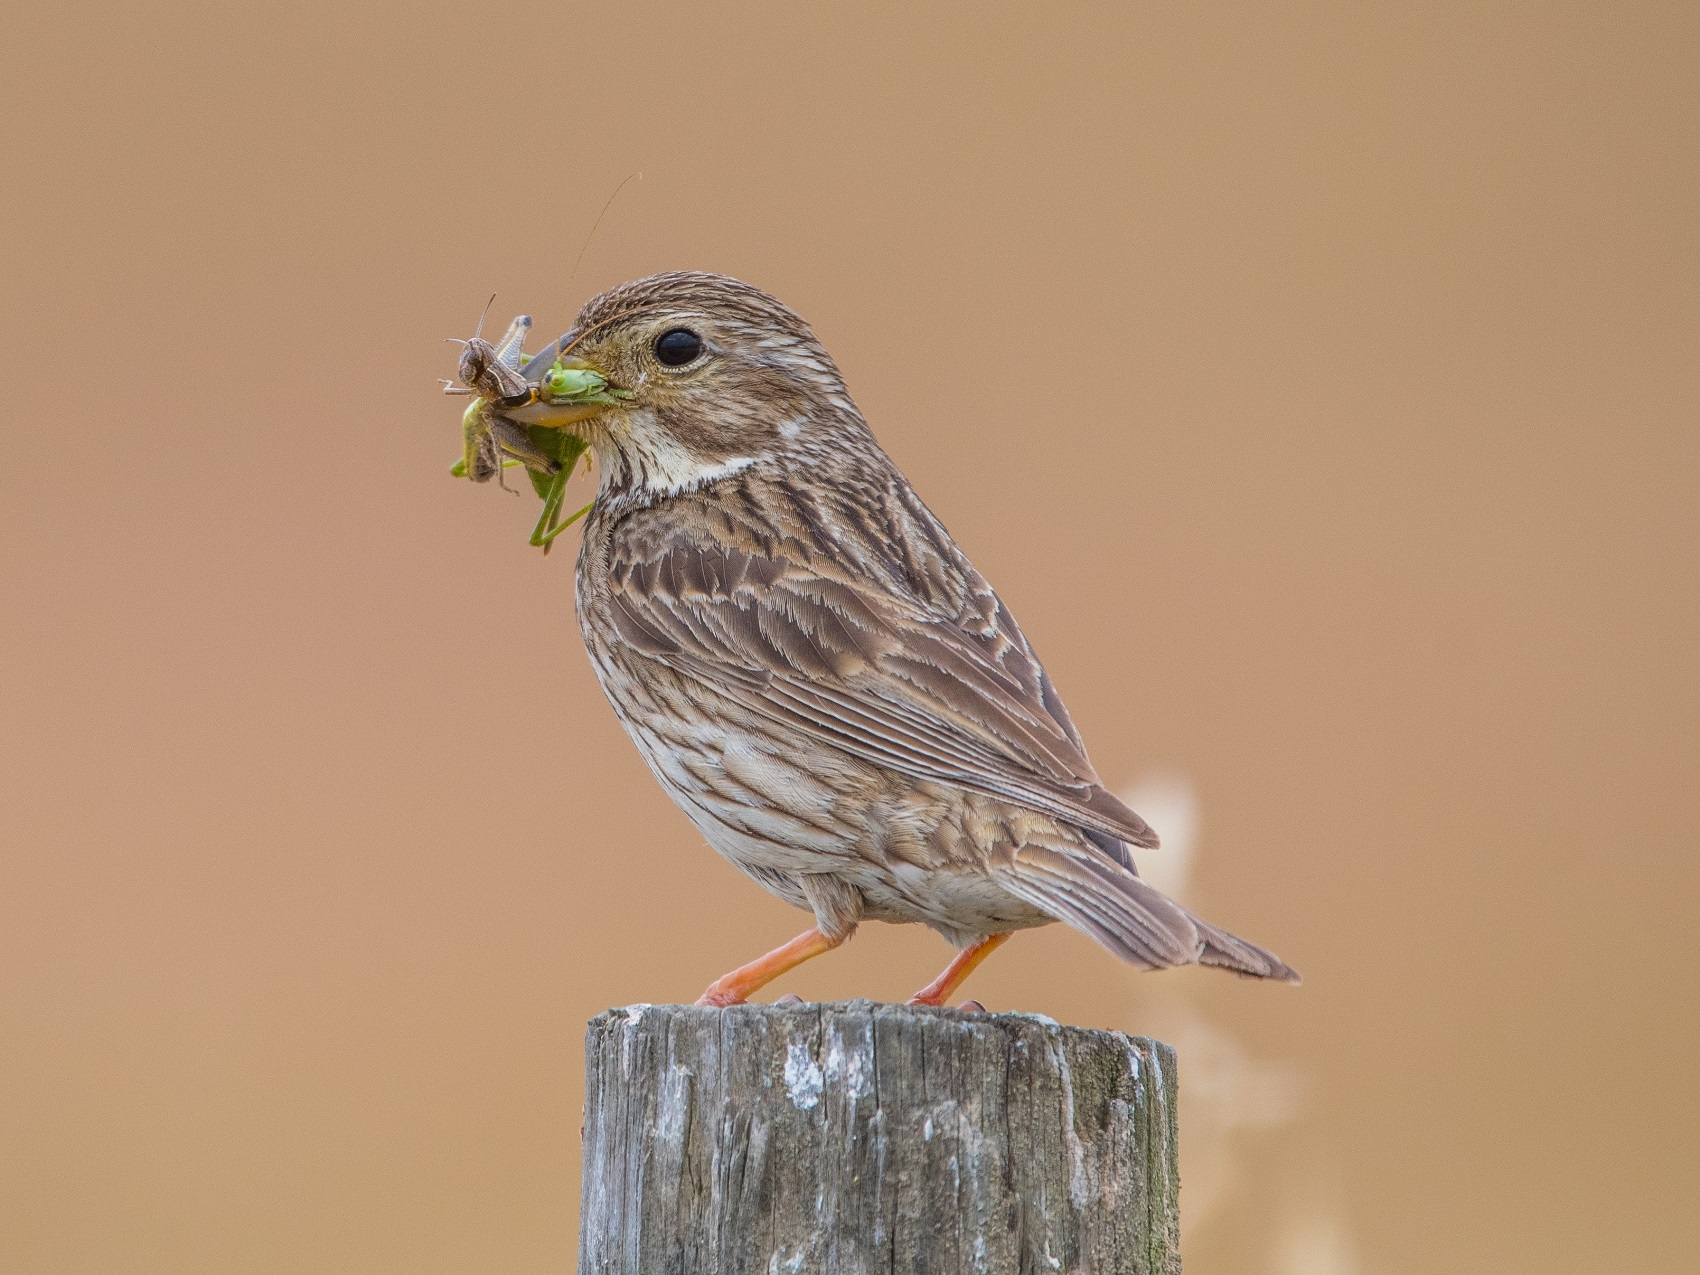 Corn bunting eating insects - Shutterstock